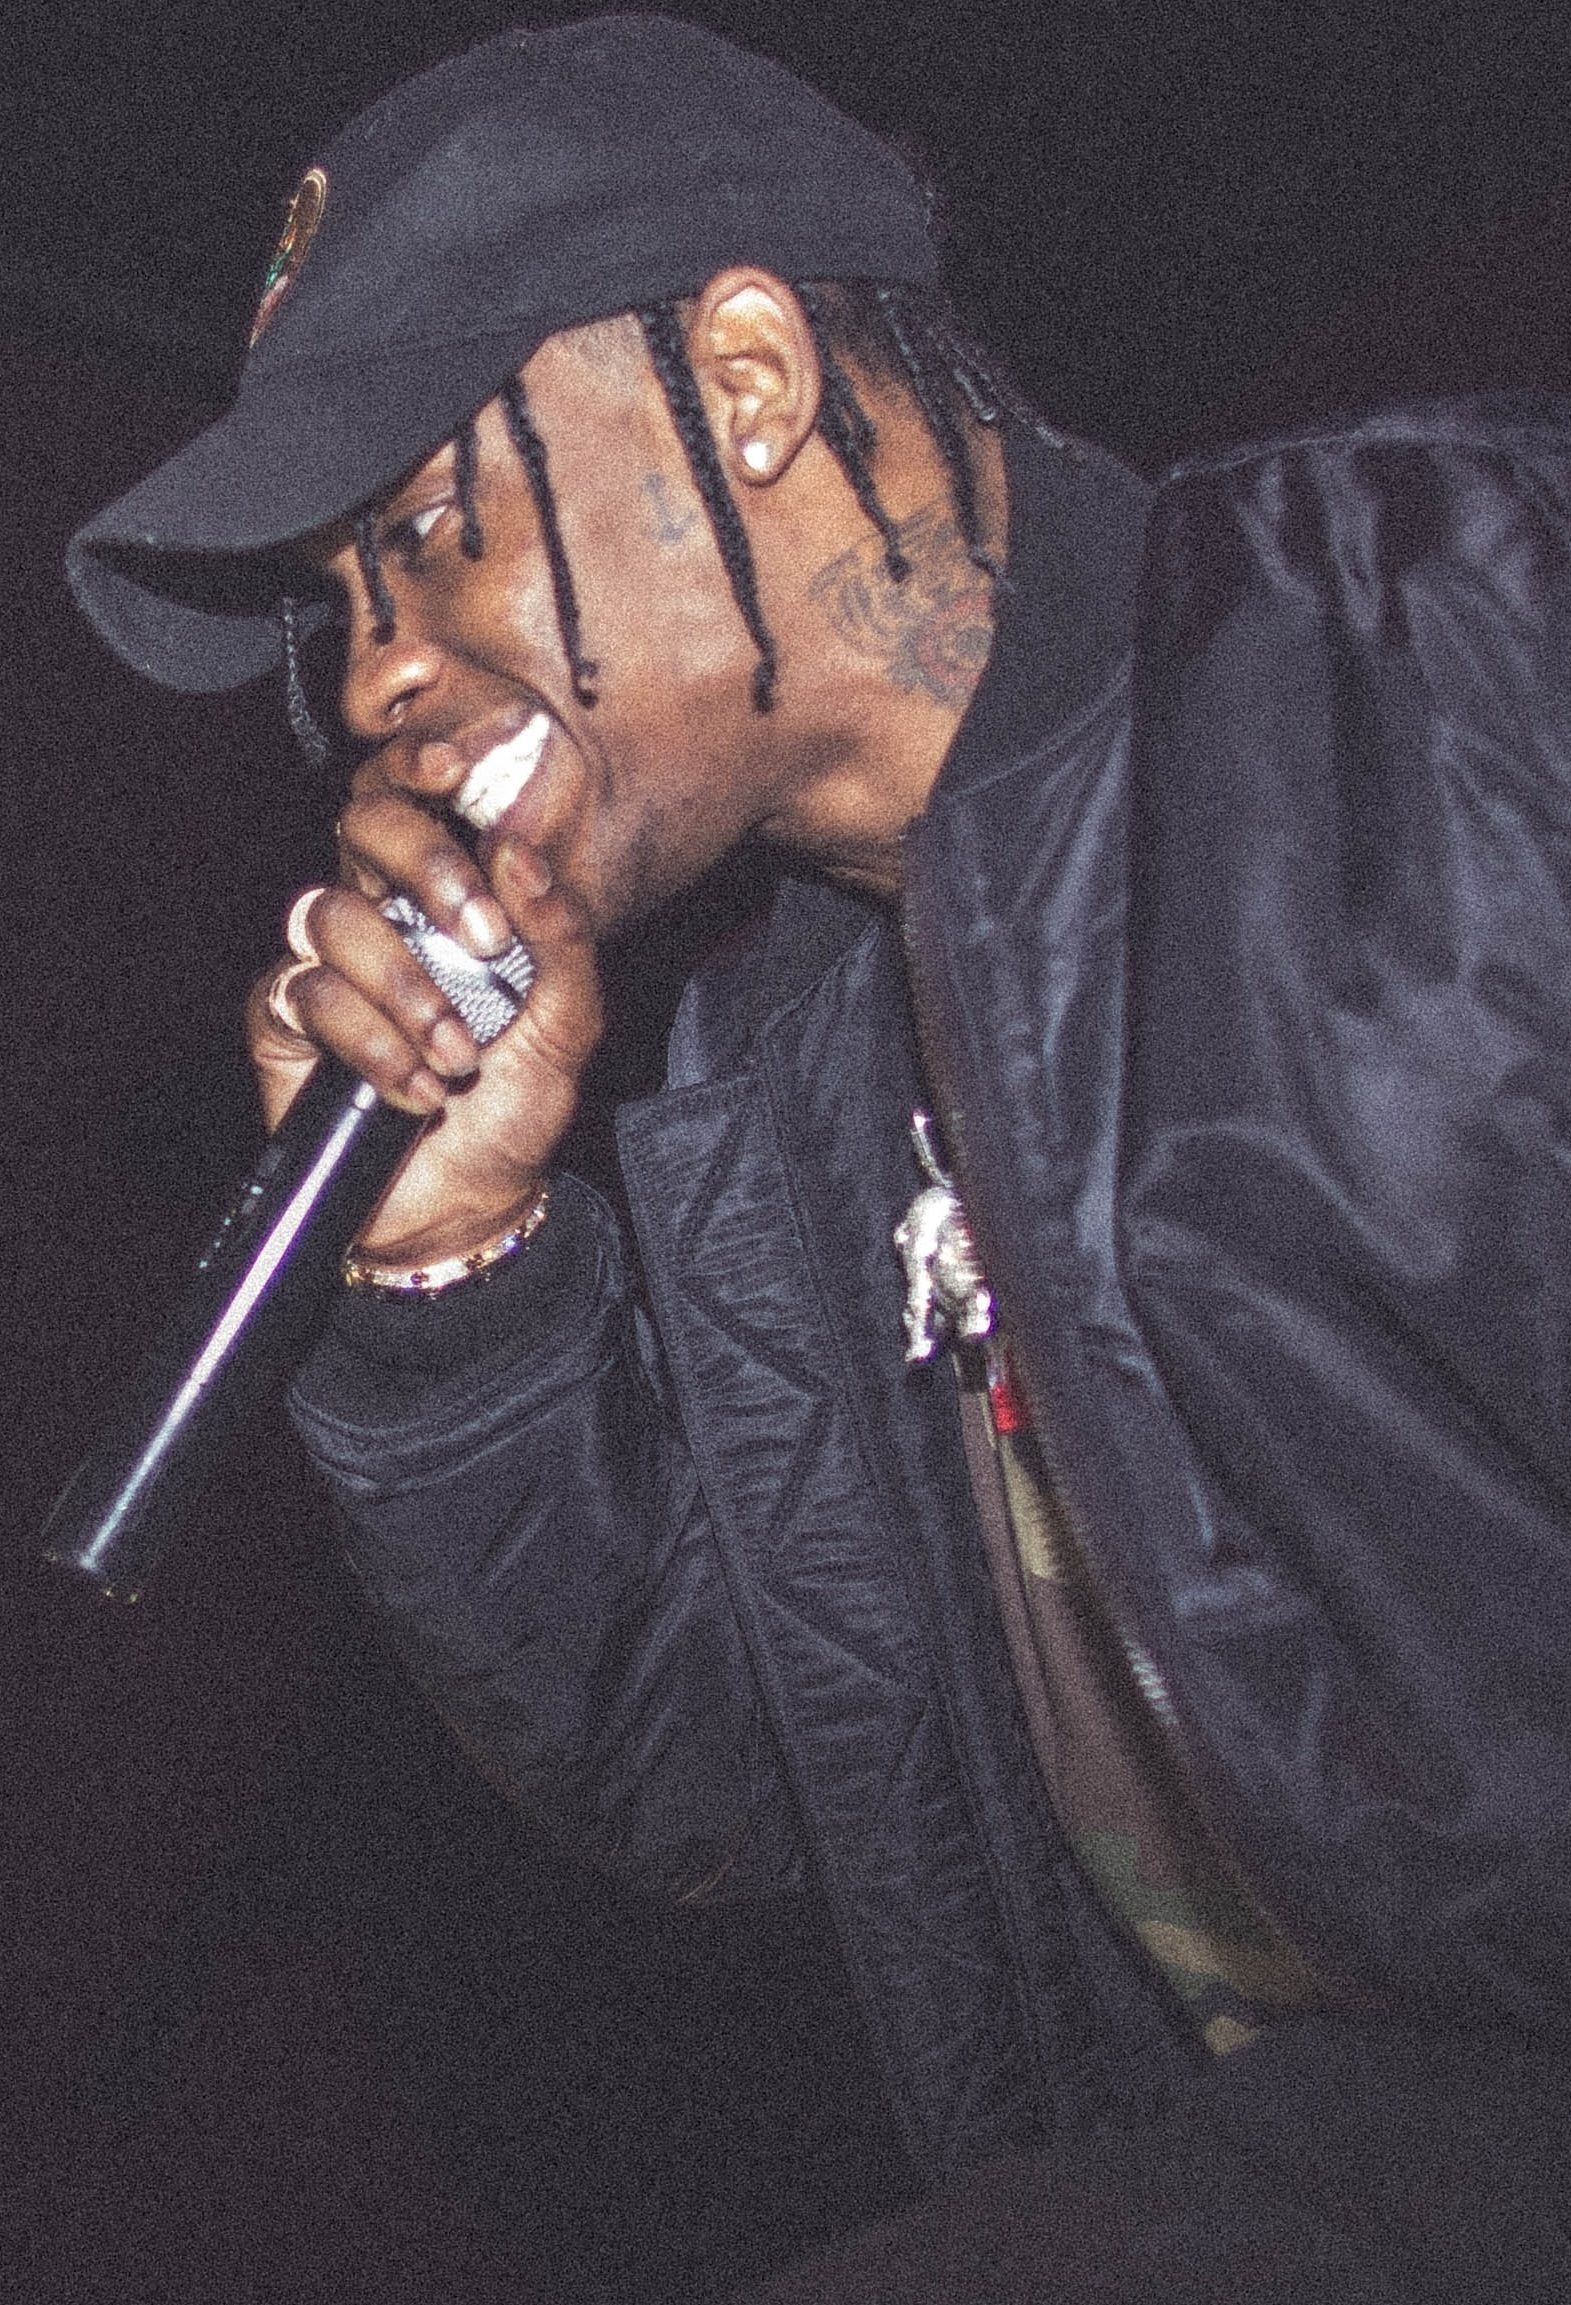 travis scott - photo #45